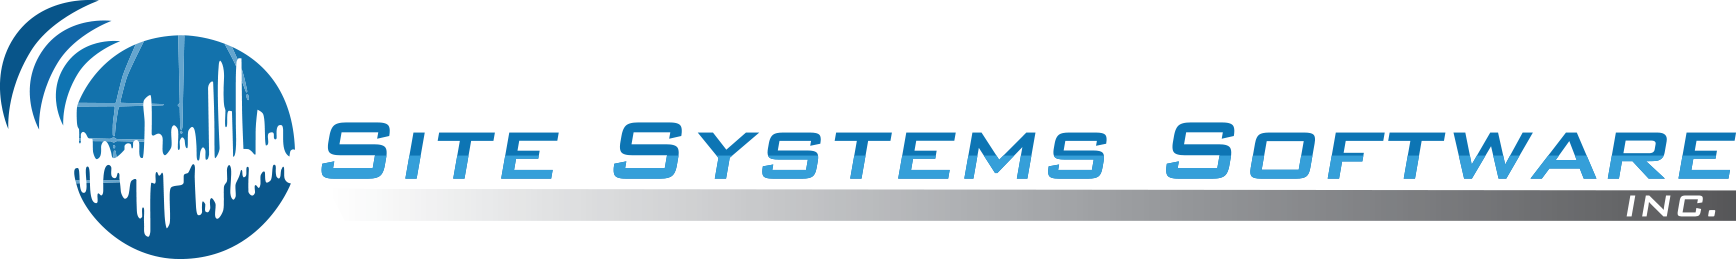 Site Systems Software Inc. Logo